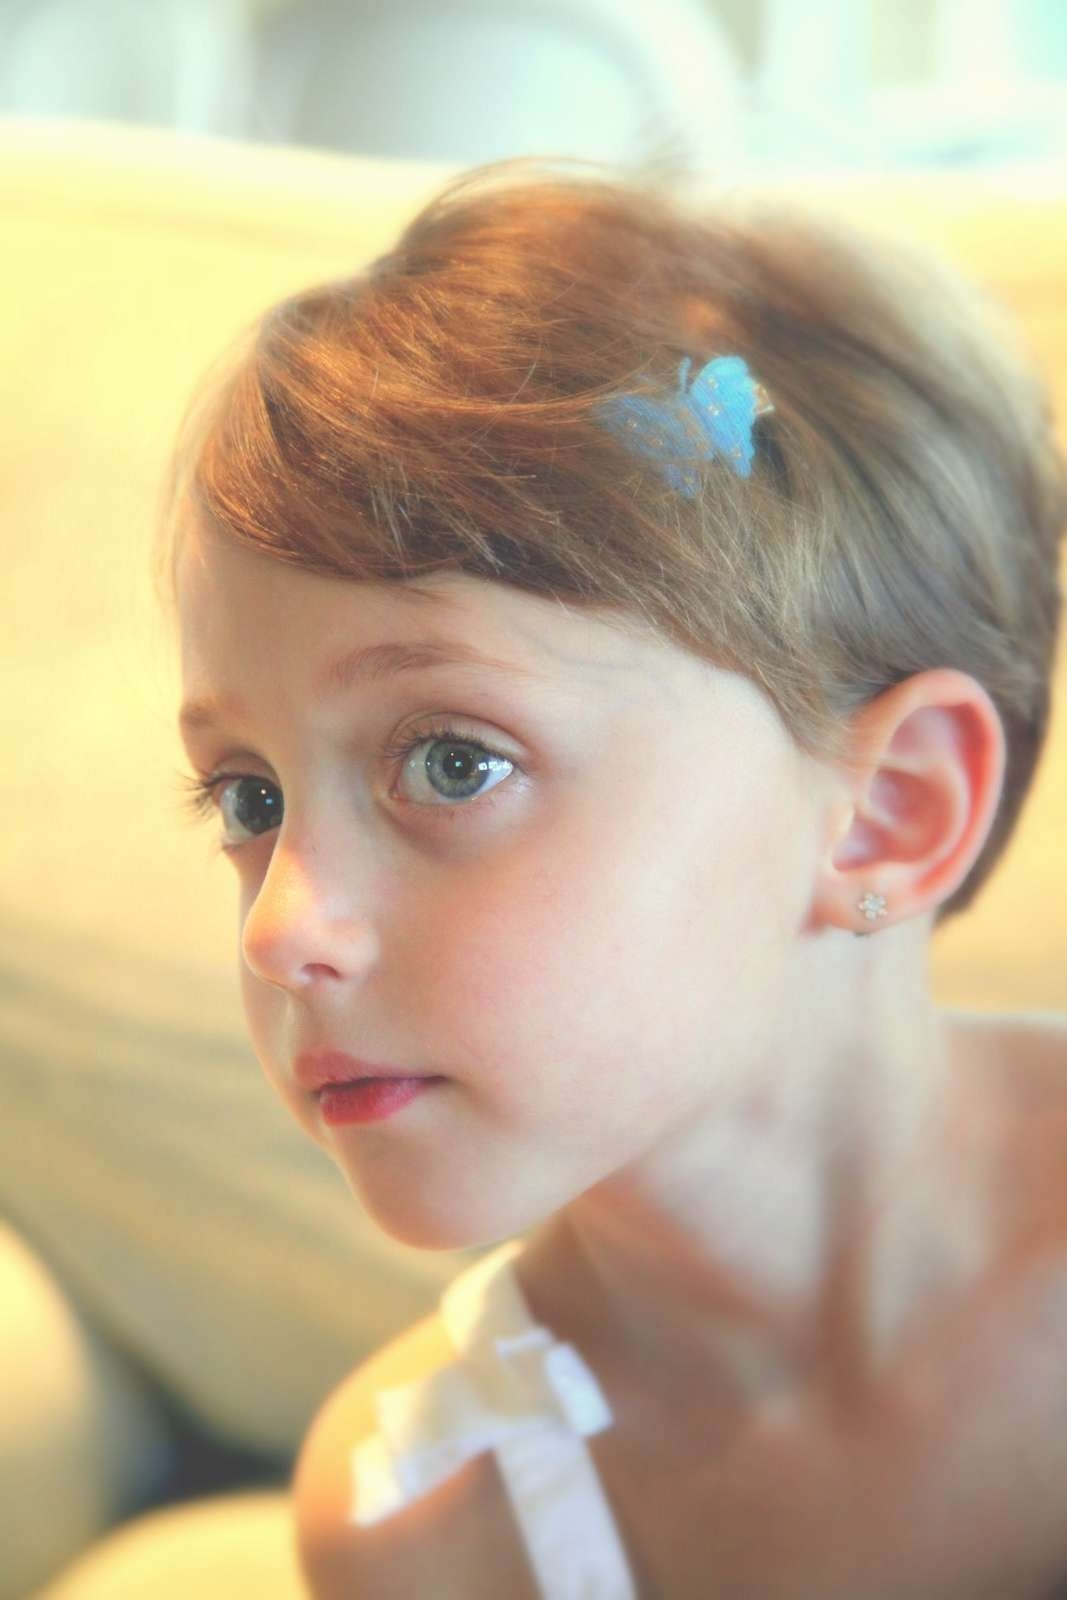 Girls Pixie Short Haircut Hairstyle | Beauty: Bombshell Pertaining To Most Recently Childrens Pixie Hairstyles (Gallery 16 of 16)